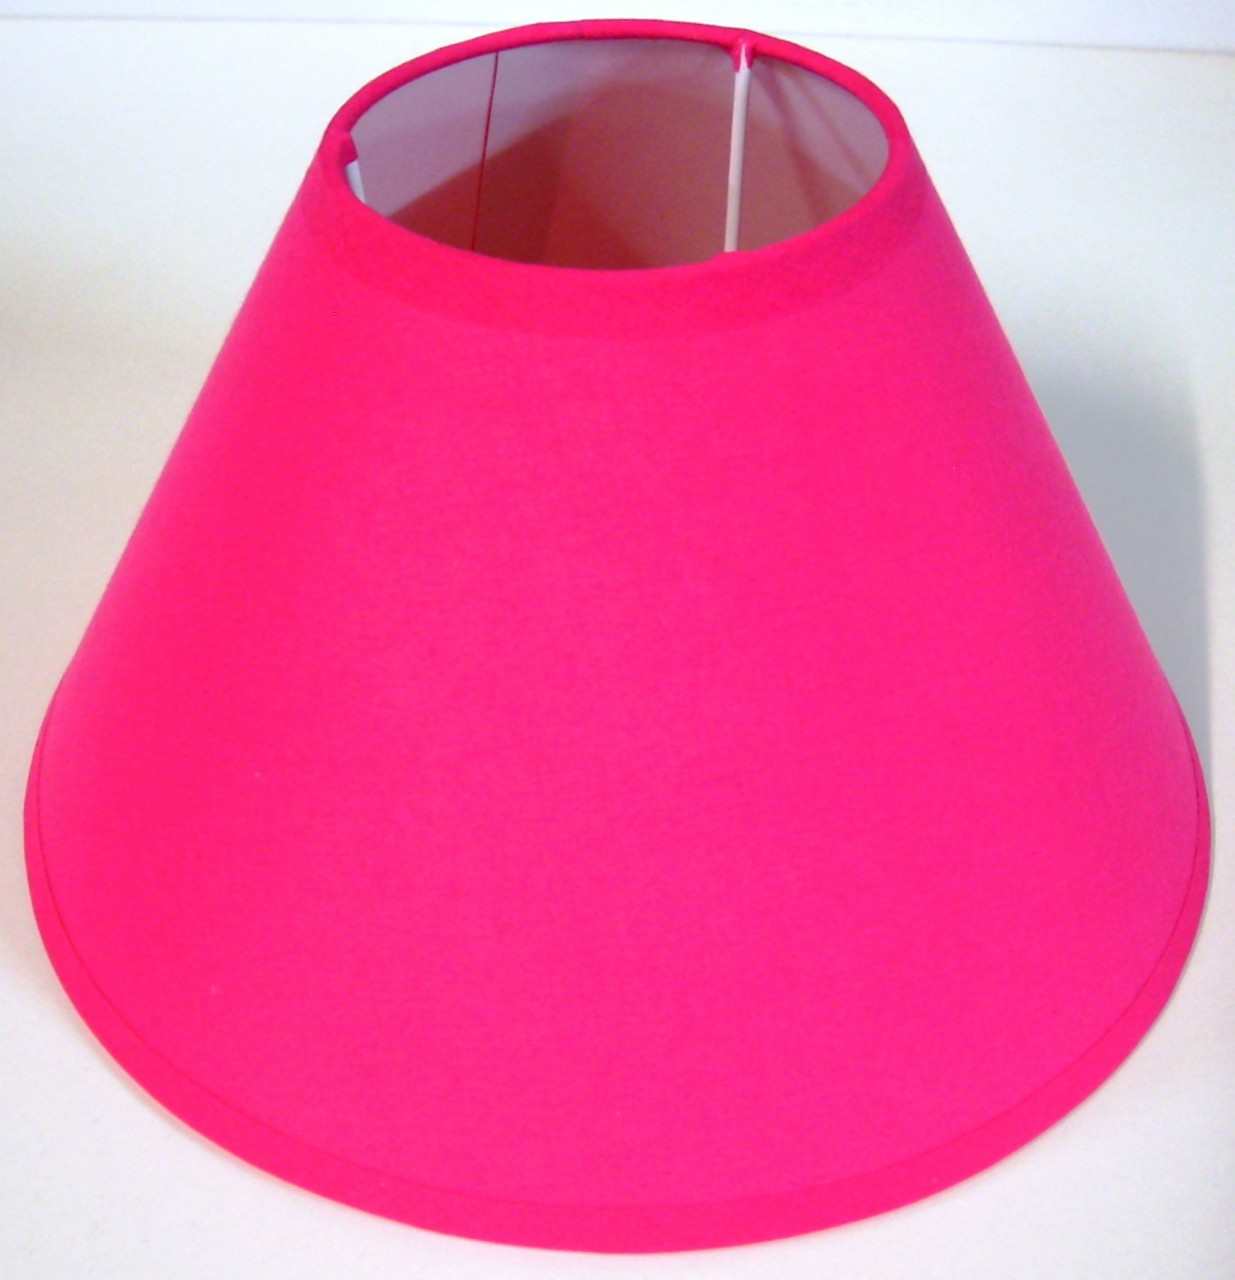 hot pink lamps photo - 1